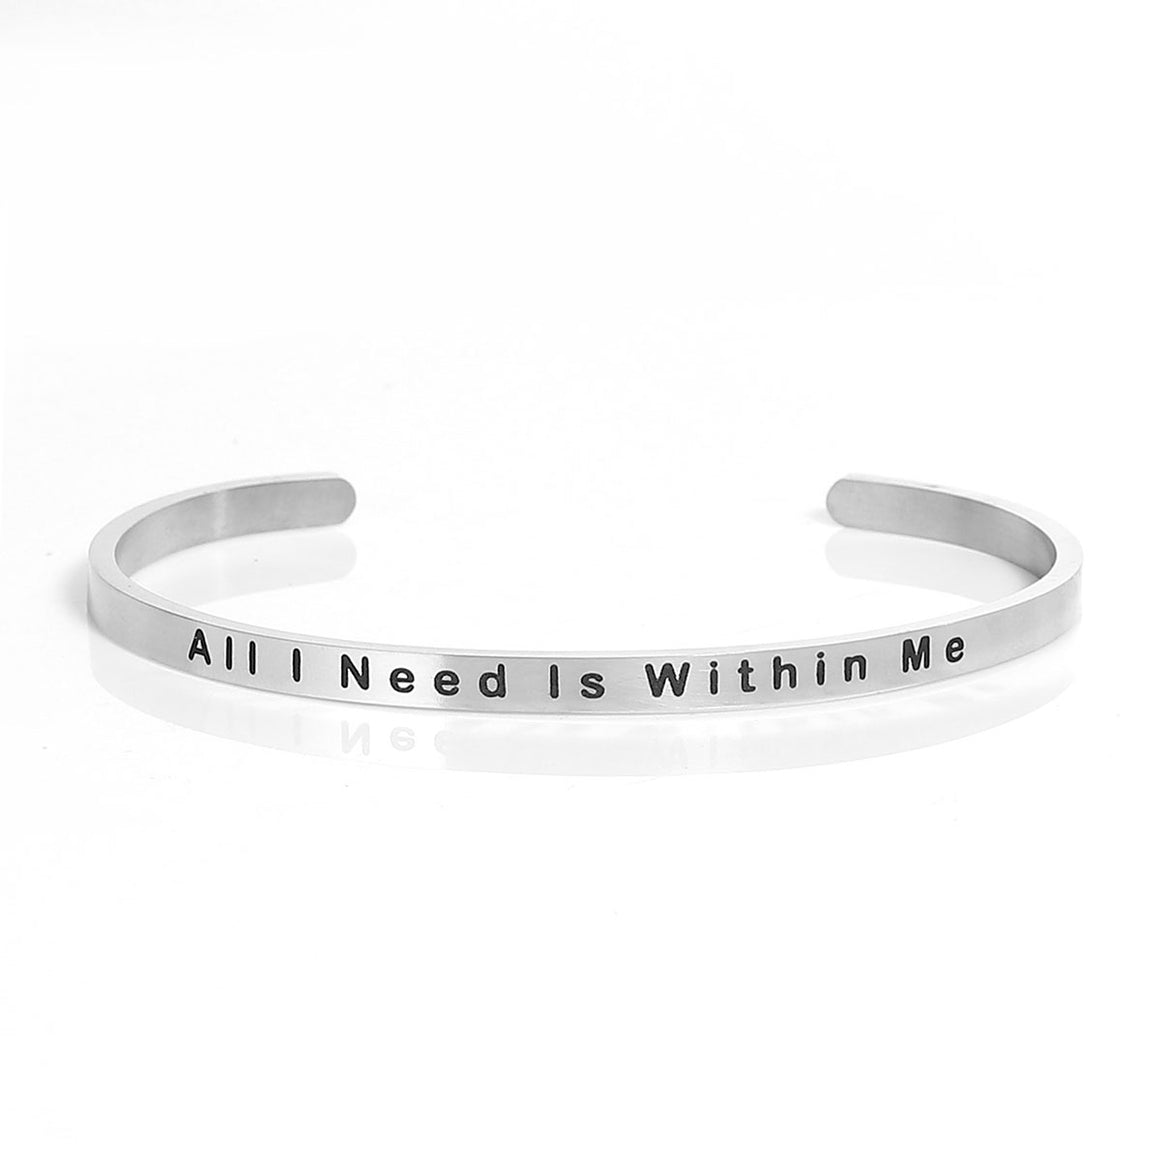 bracelets light black inspirational plated your let shape my girls message rectangle polished silver shine item leather stamped jewelry charm from bracelet in